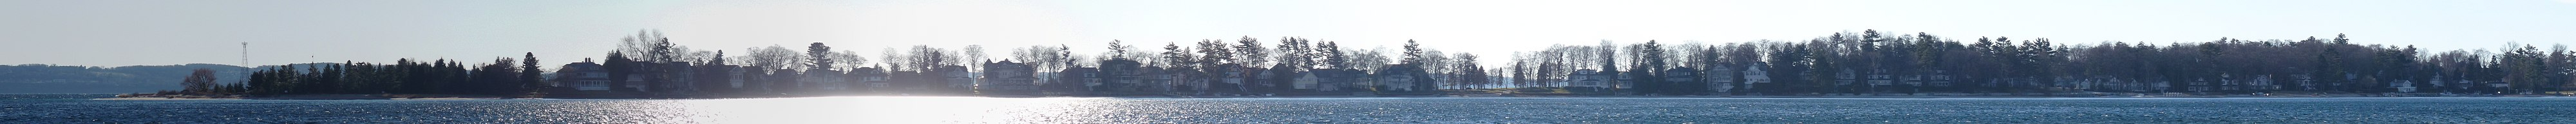 View of Harbor Point, MI from Wequetonsing, MI